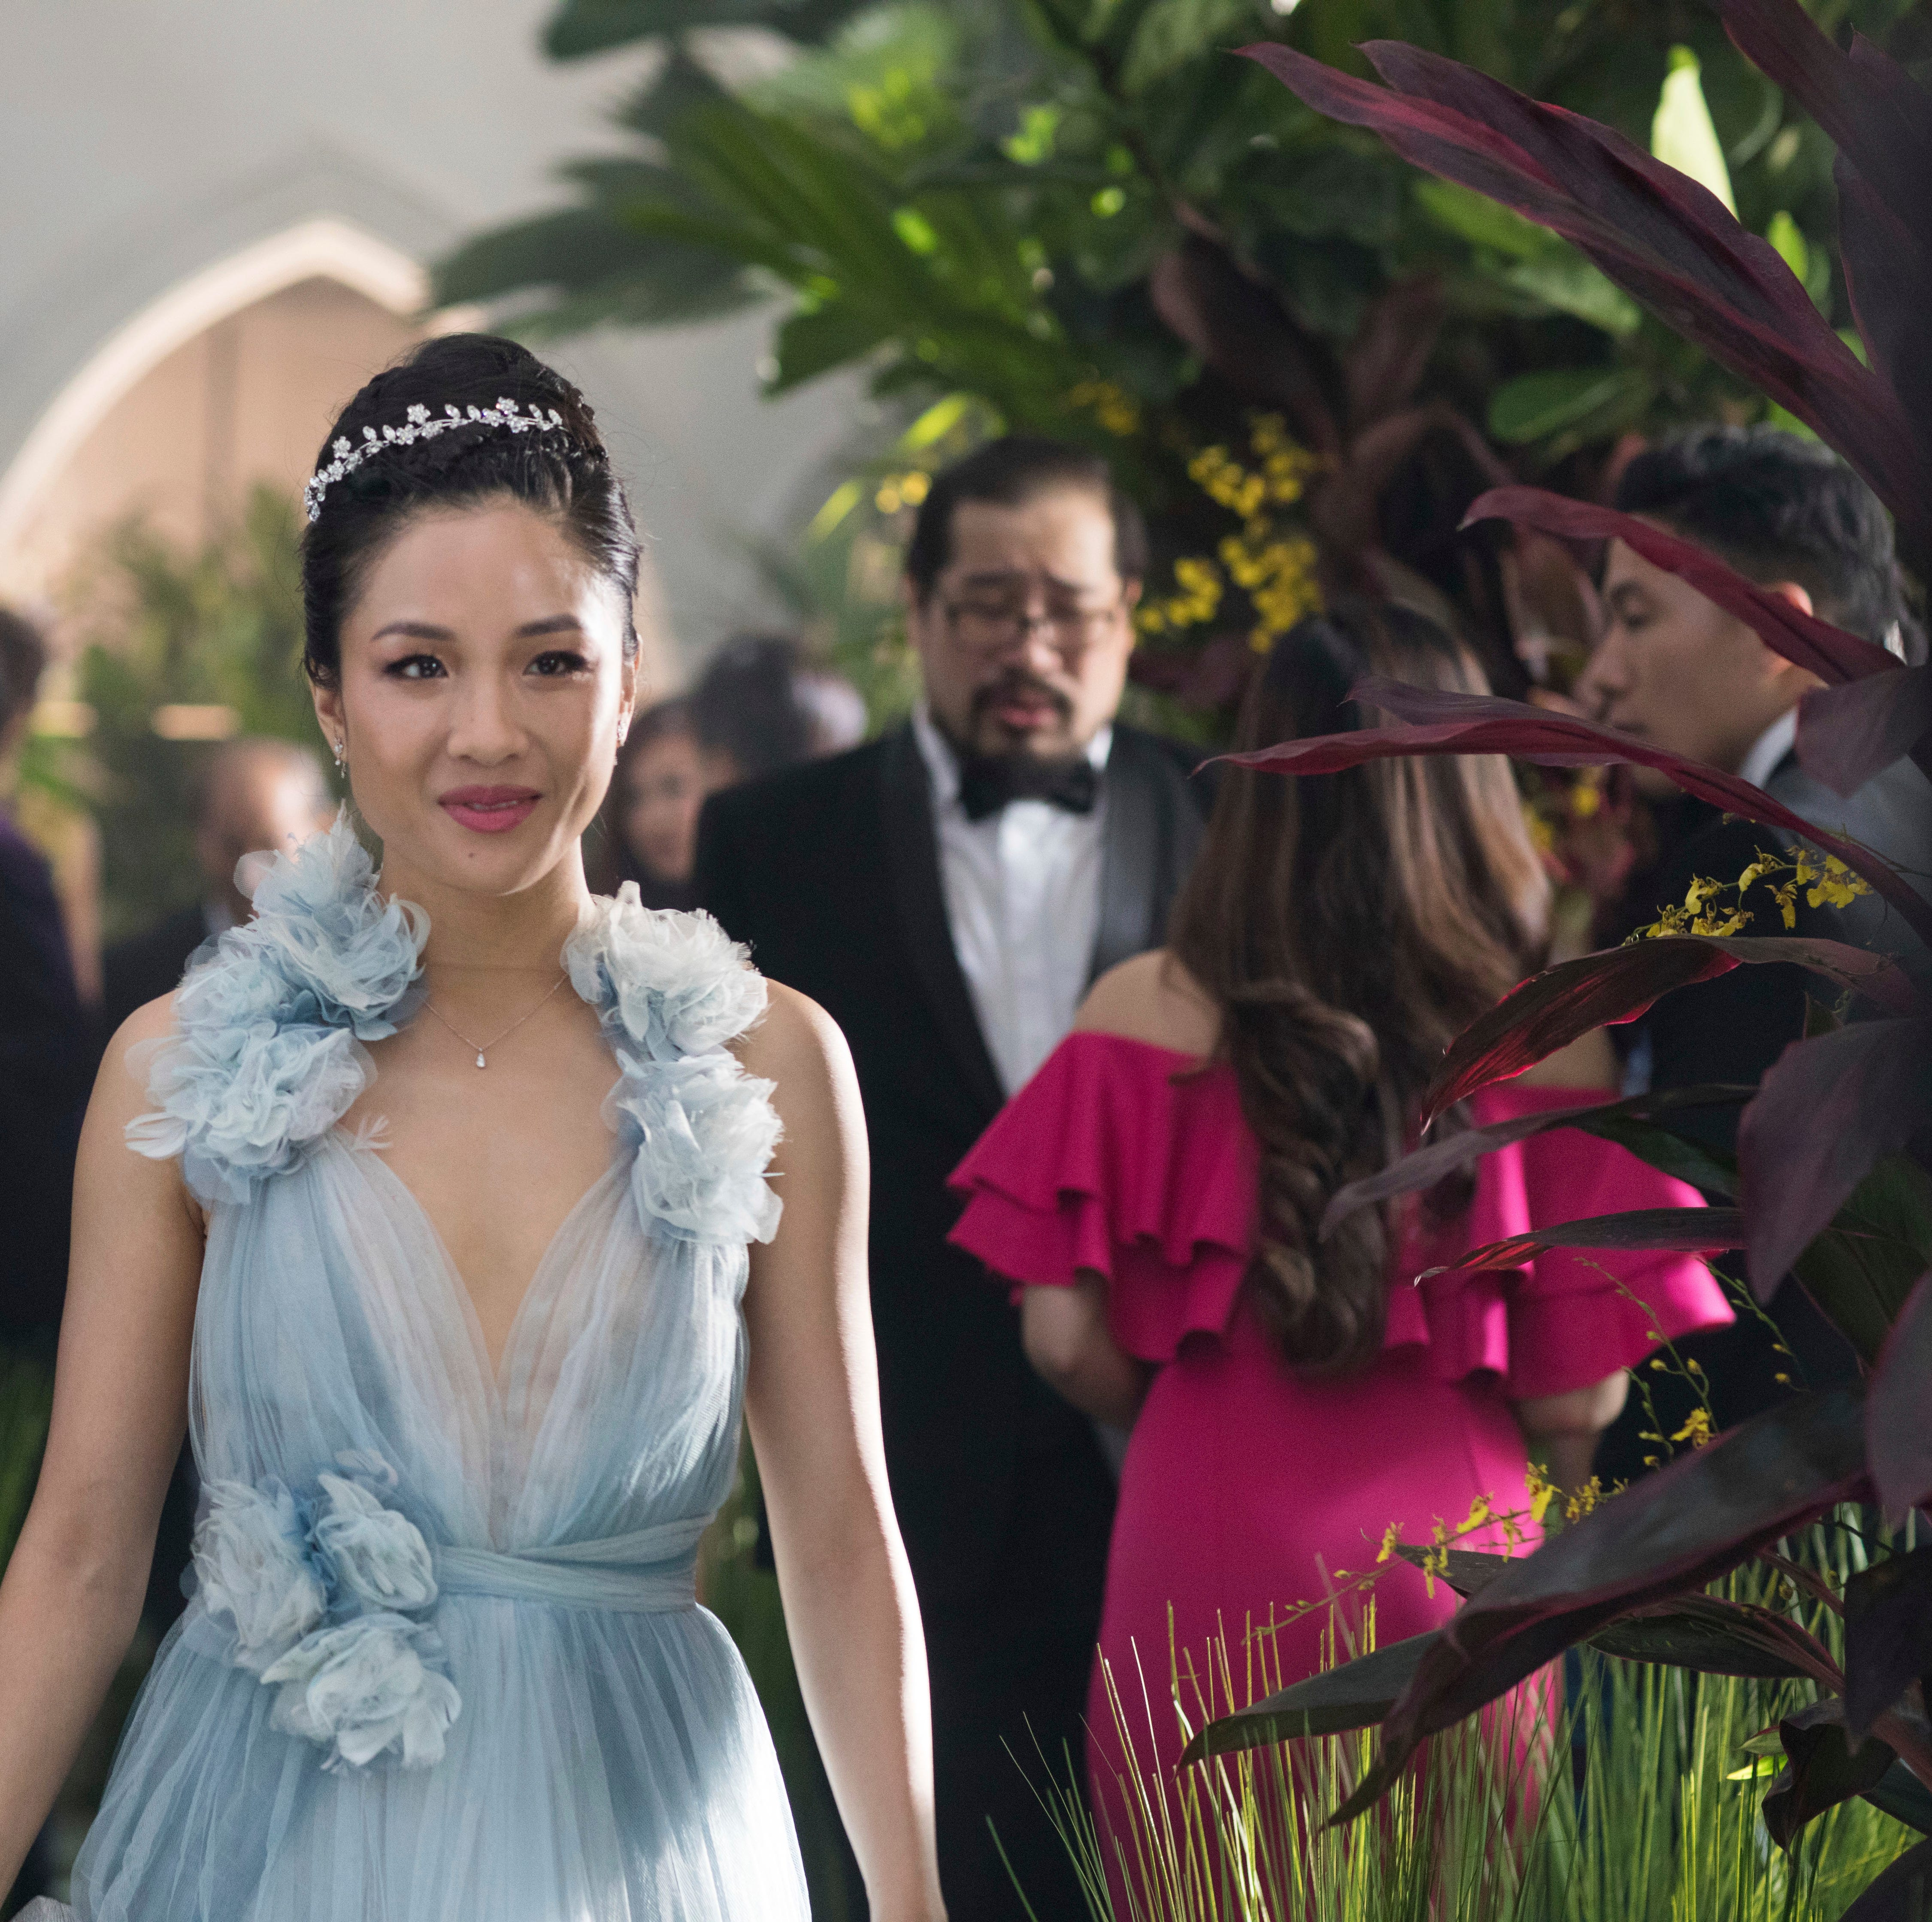 'Crazy Rich Asians' movie boosts sales for books to 1.5 million copies